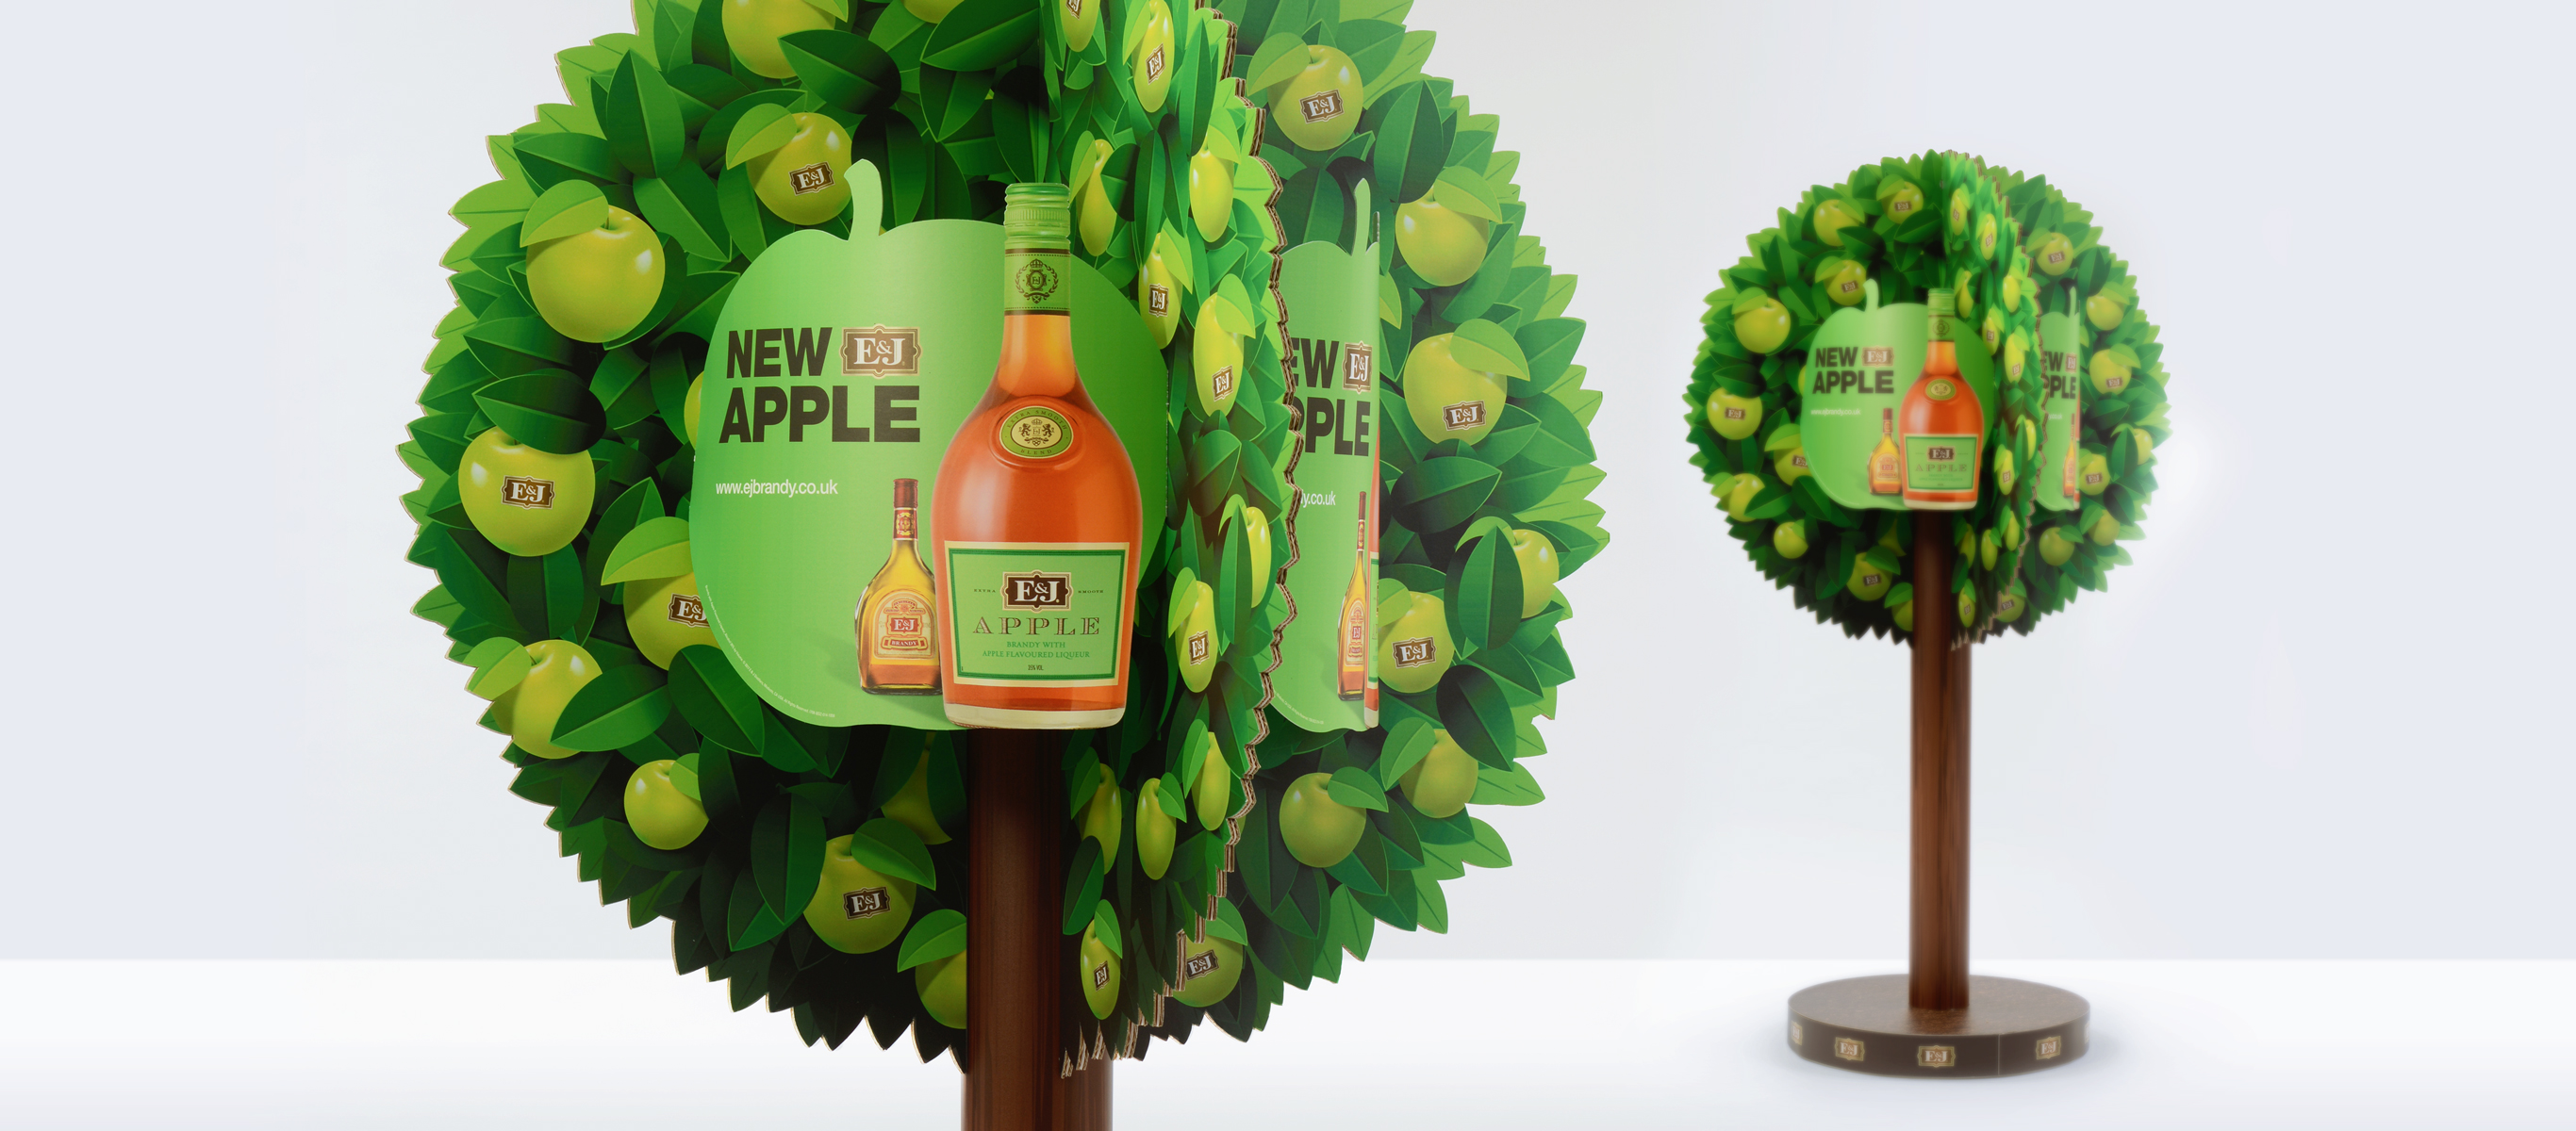 Trade Marketing Display for E&J Apple Brandy